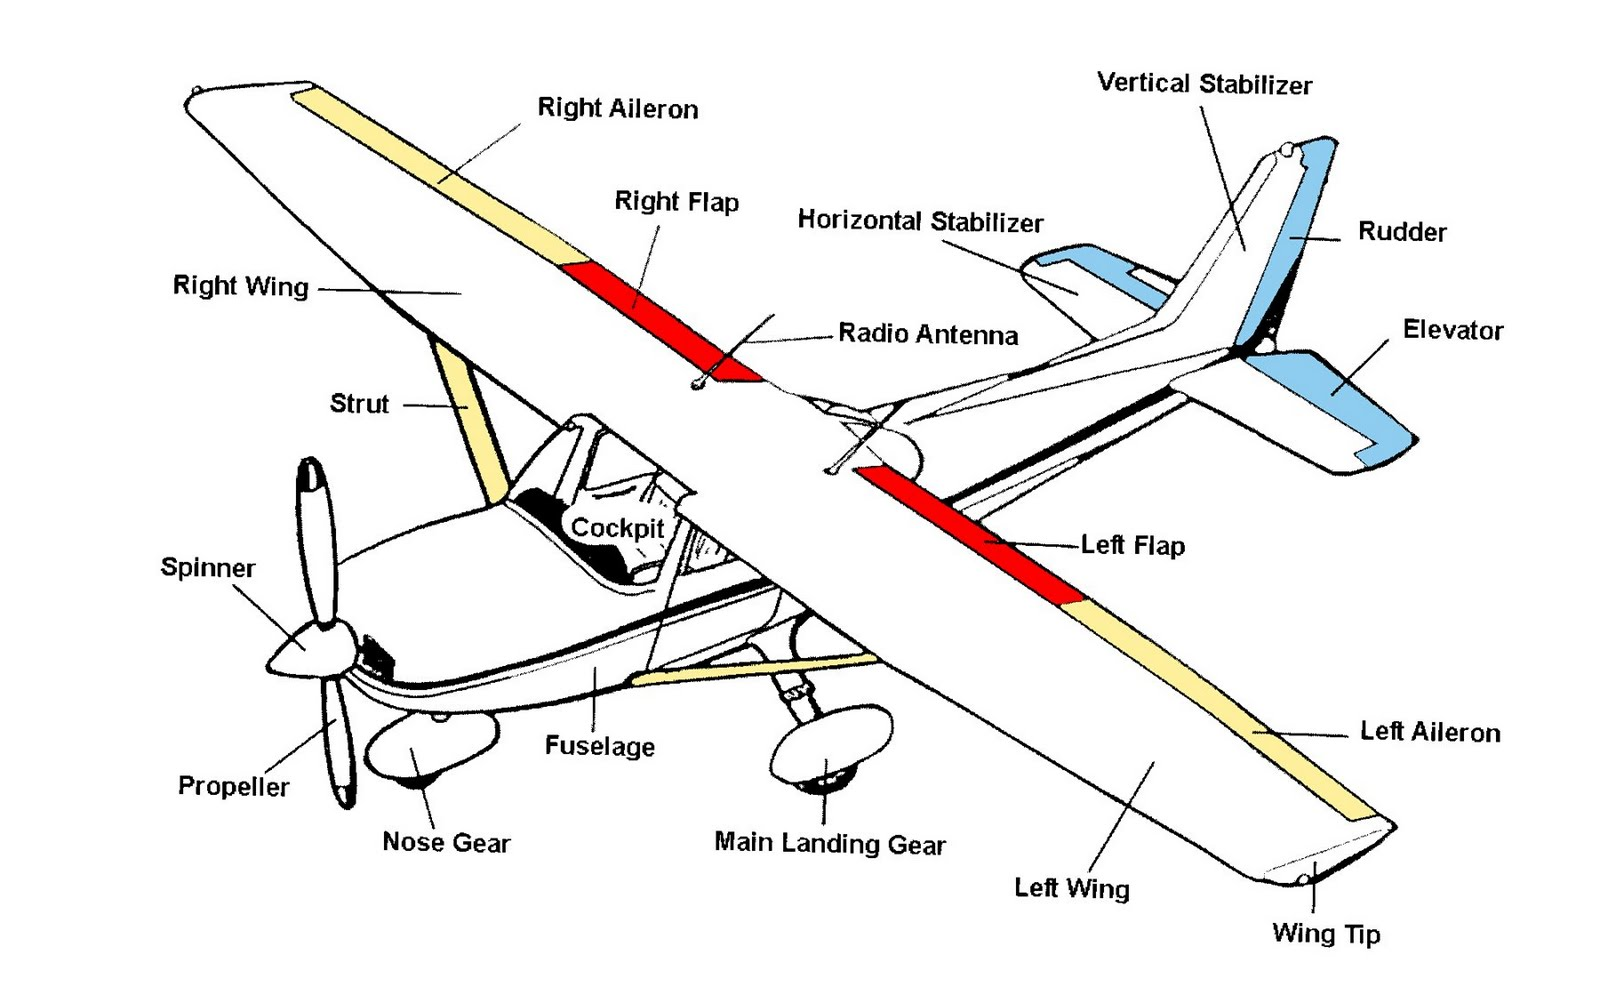 Paper Airplane Diagram Of Parts 2003 Passat 6 Cylinder Engine Part Schematic Free Image For